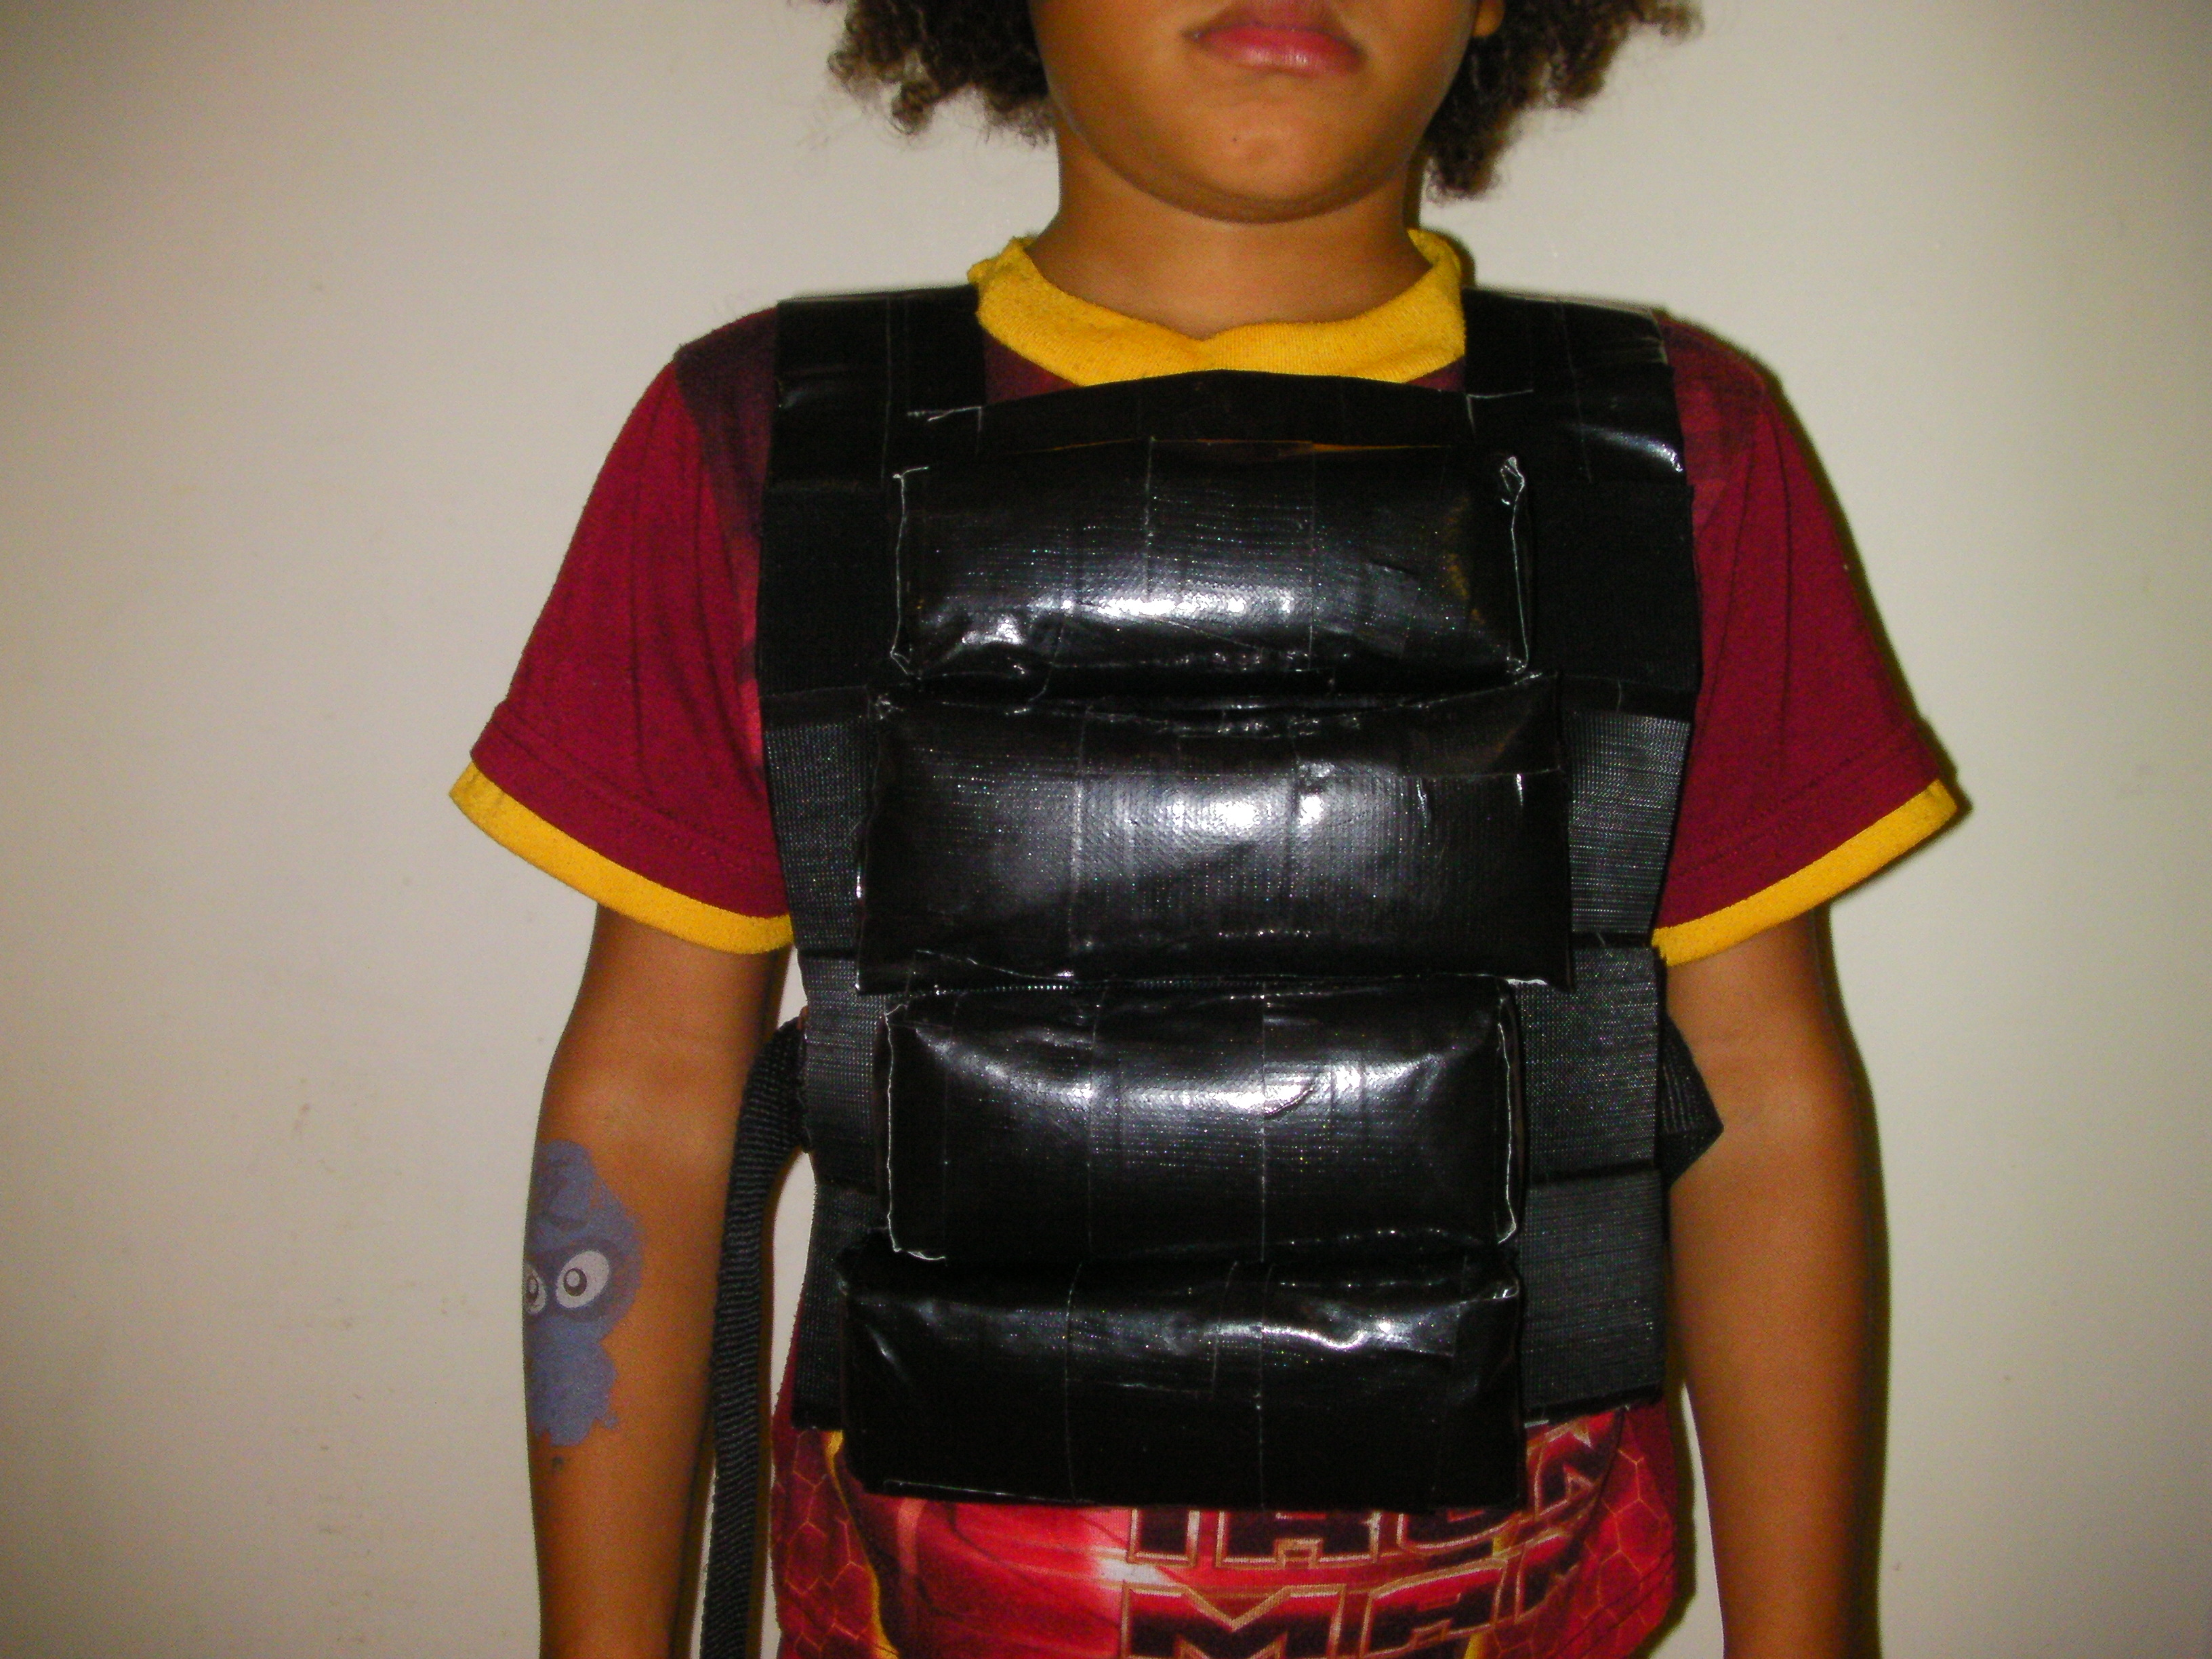 Duct Tape Adjustable Weight Vest